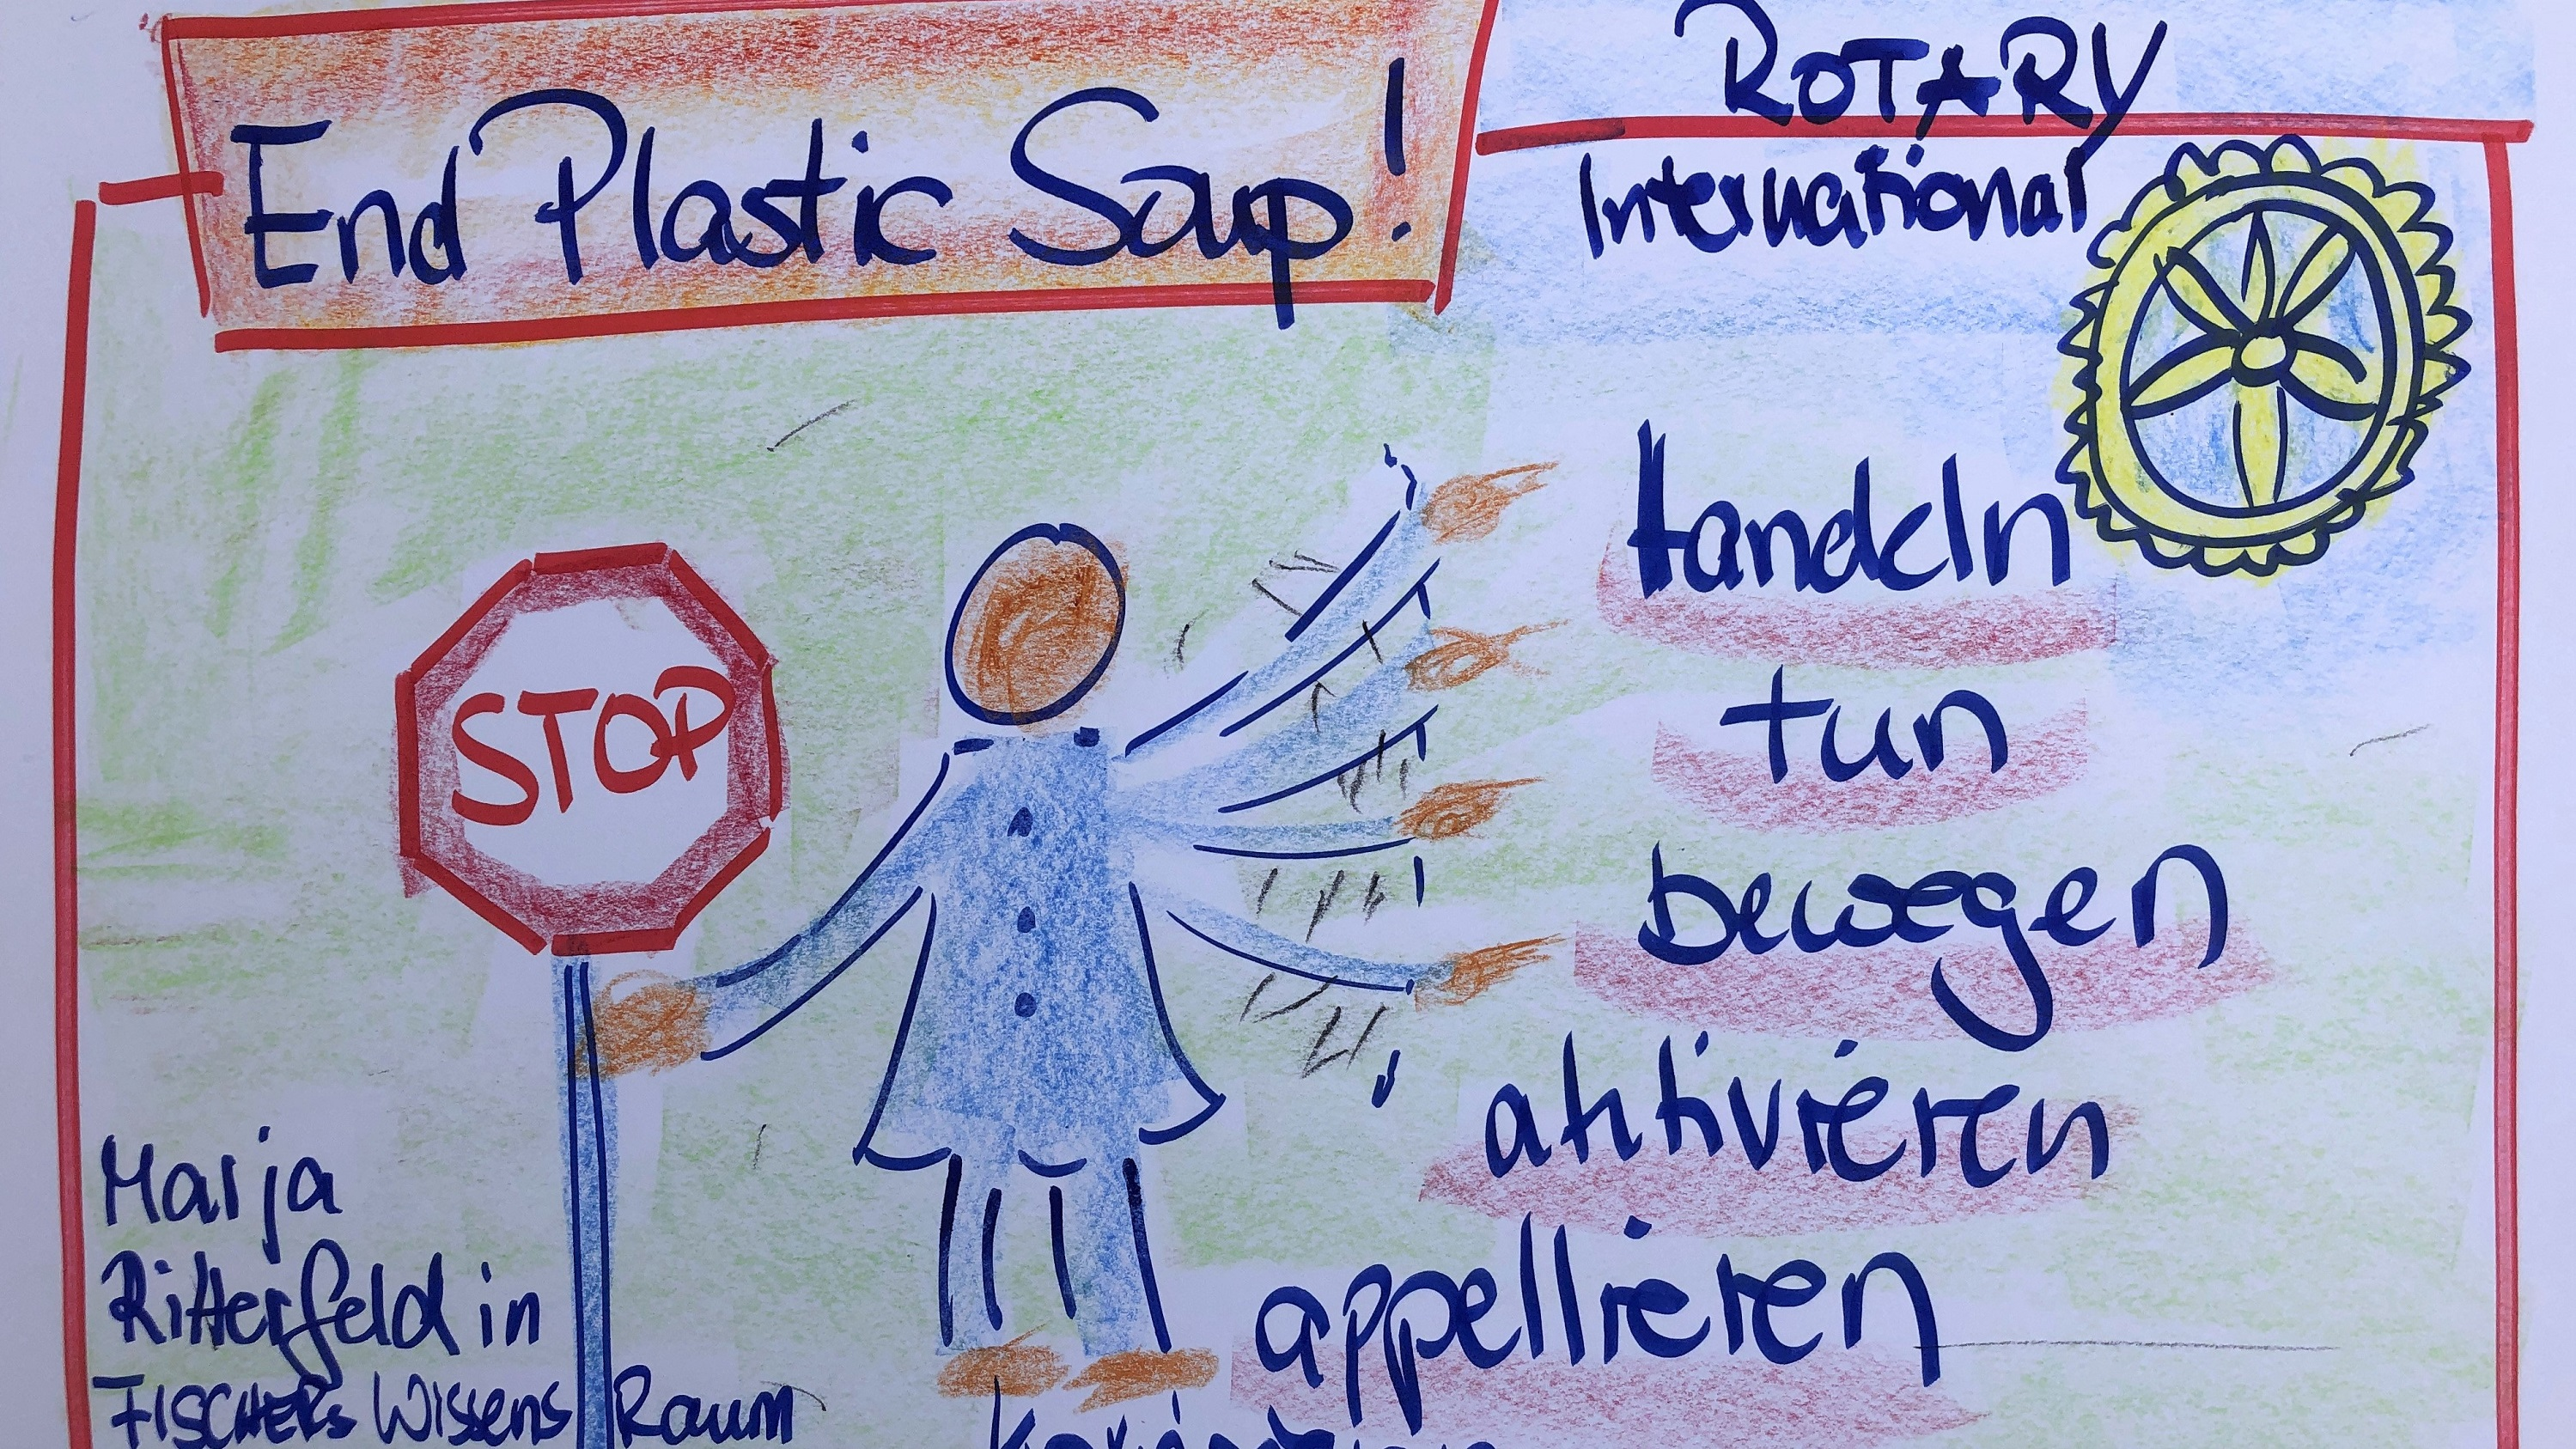 End Plastic Soup!